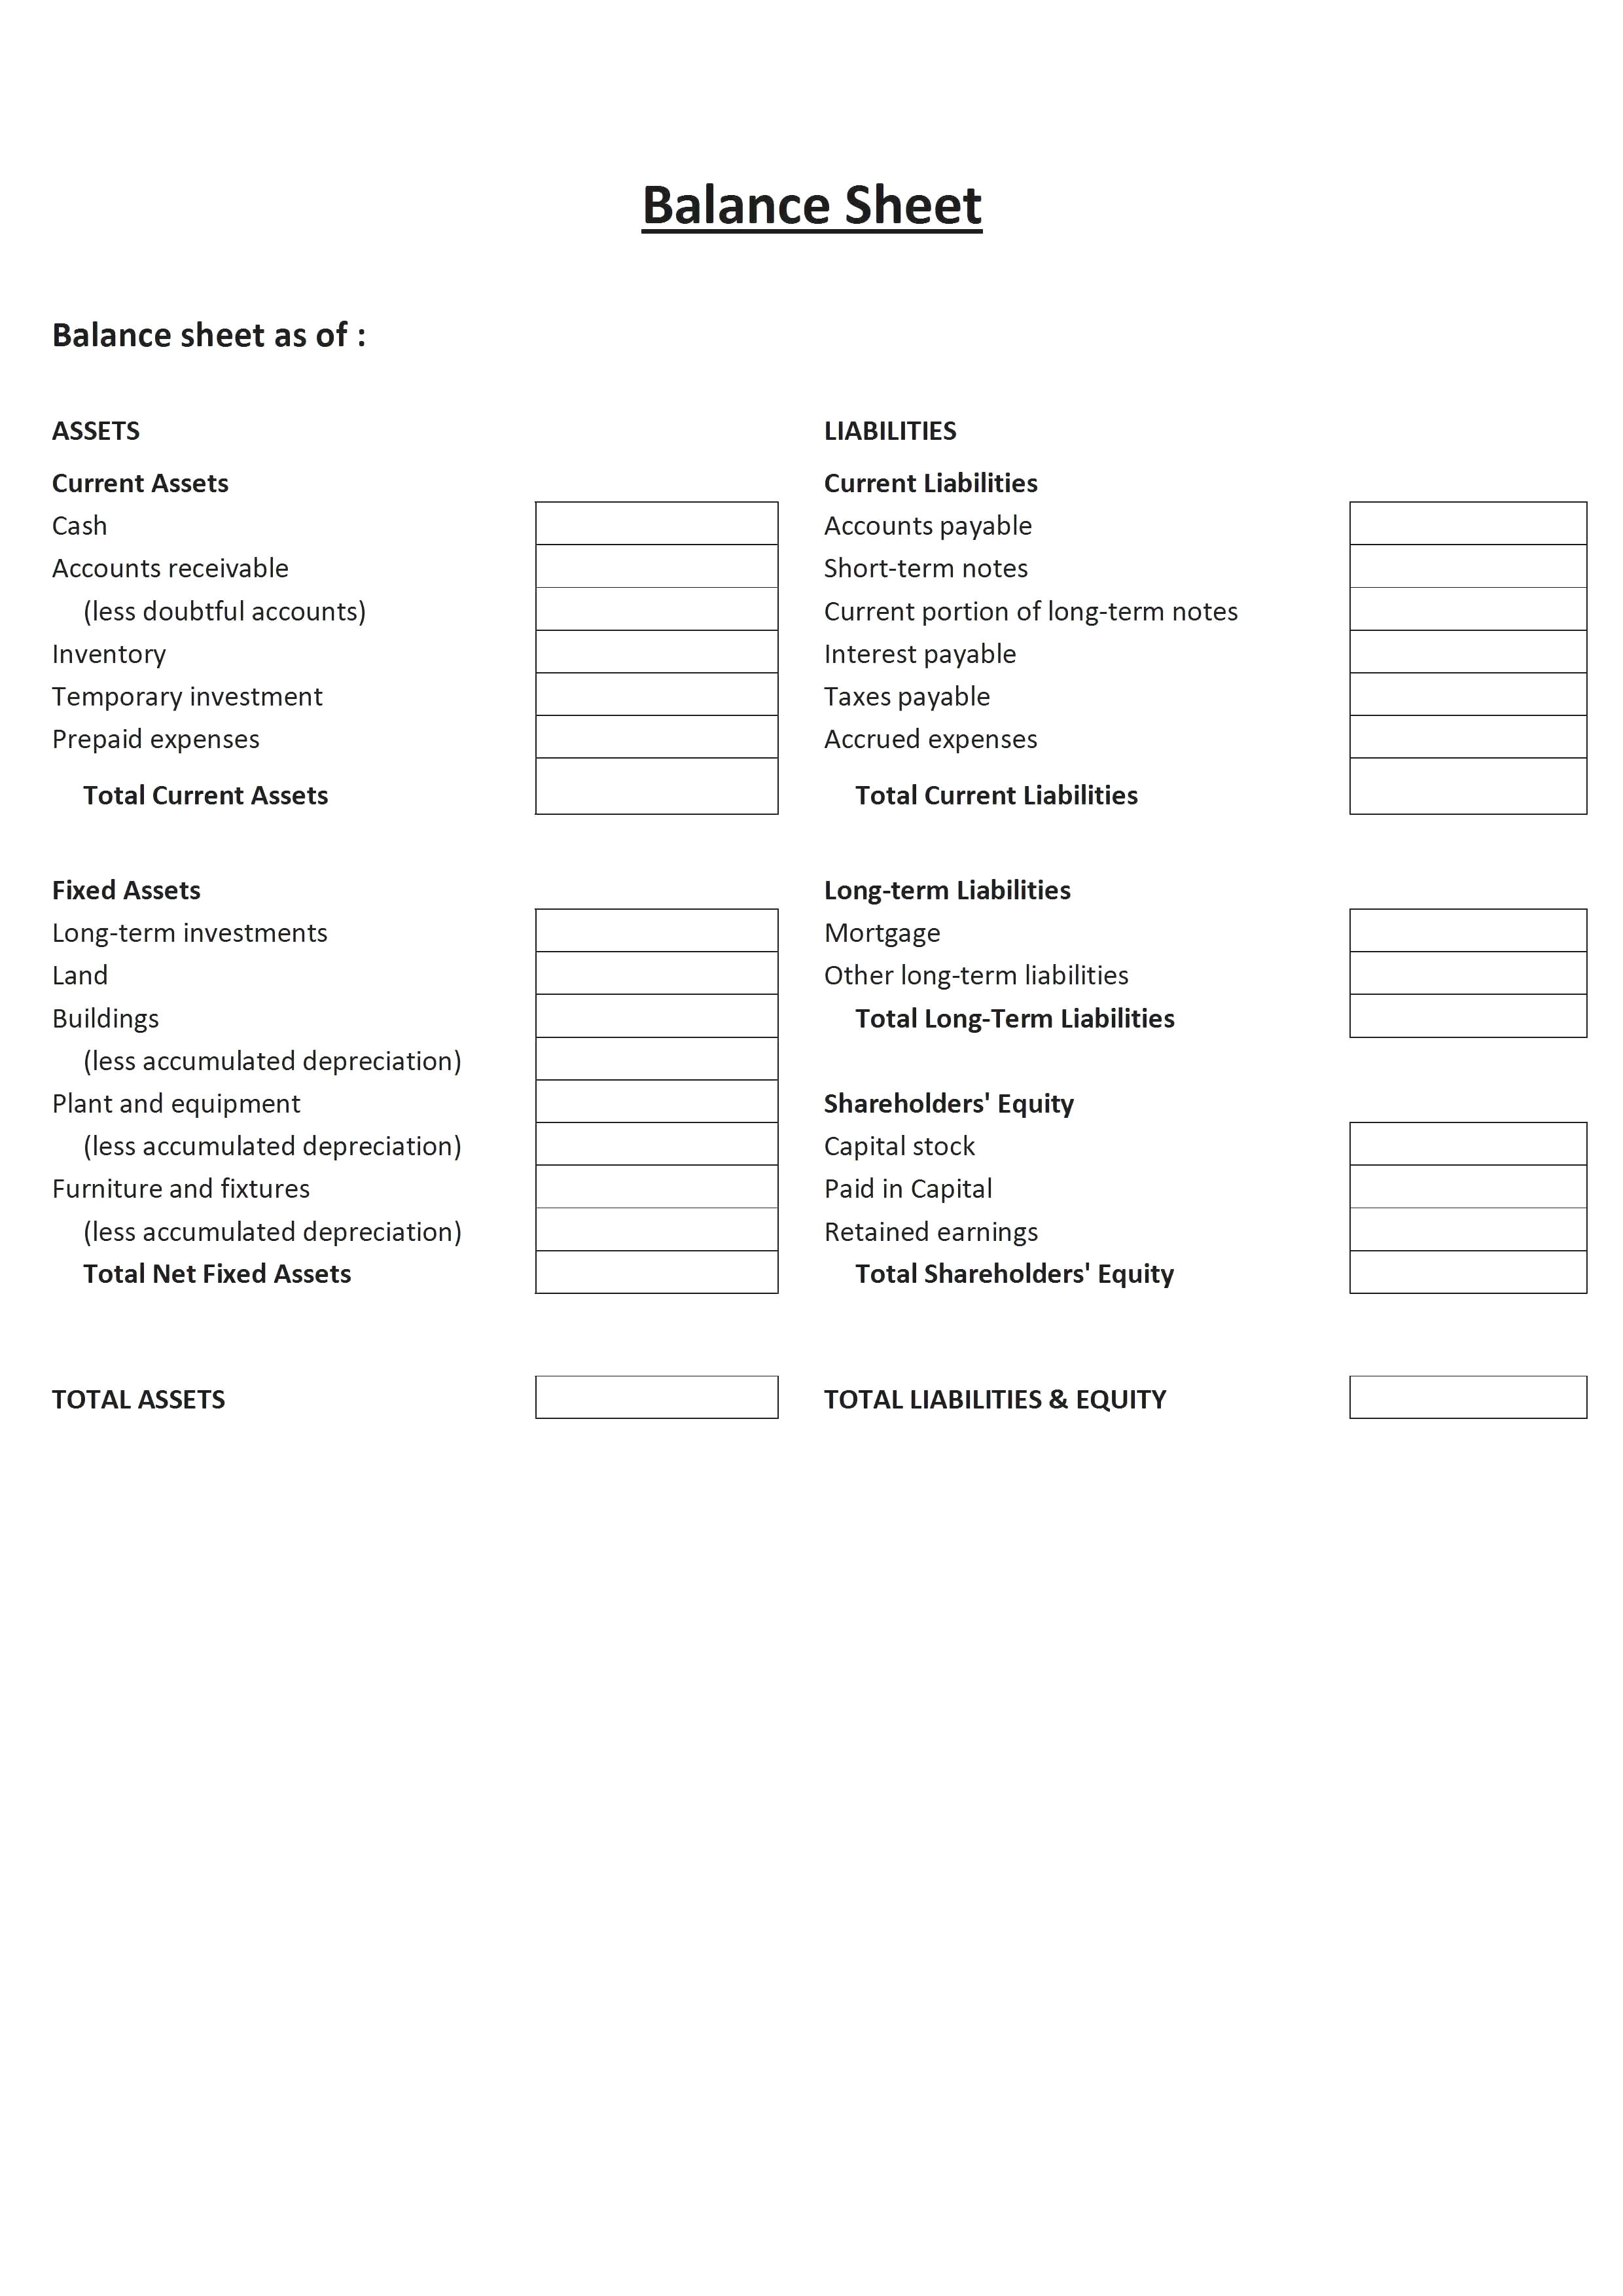 Balance Sheet Freewordtemplates Net Sheet Repetfil